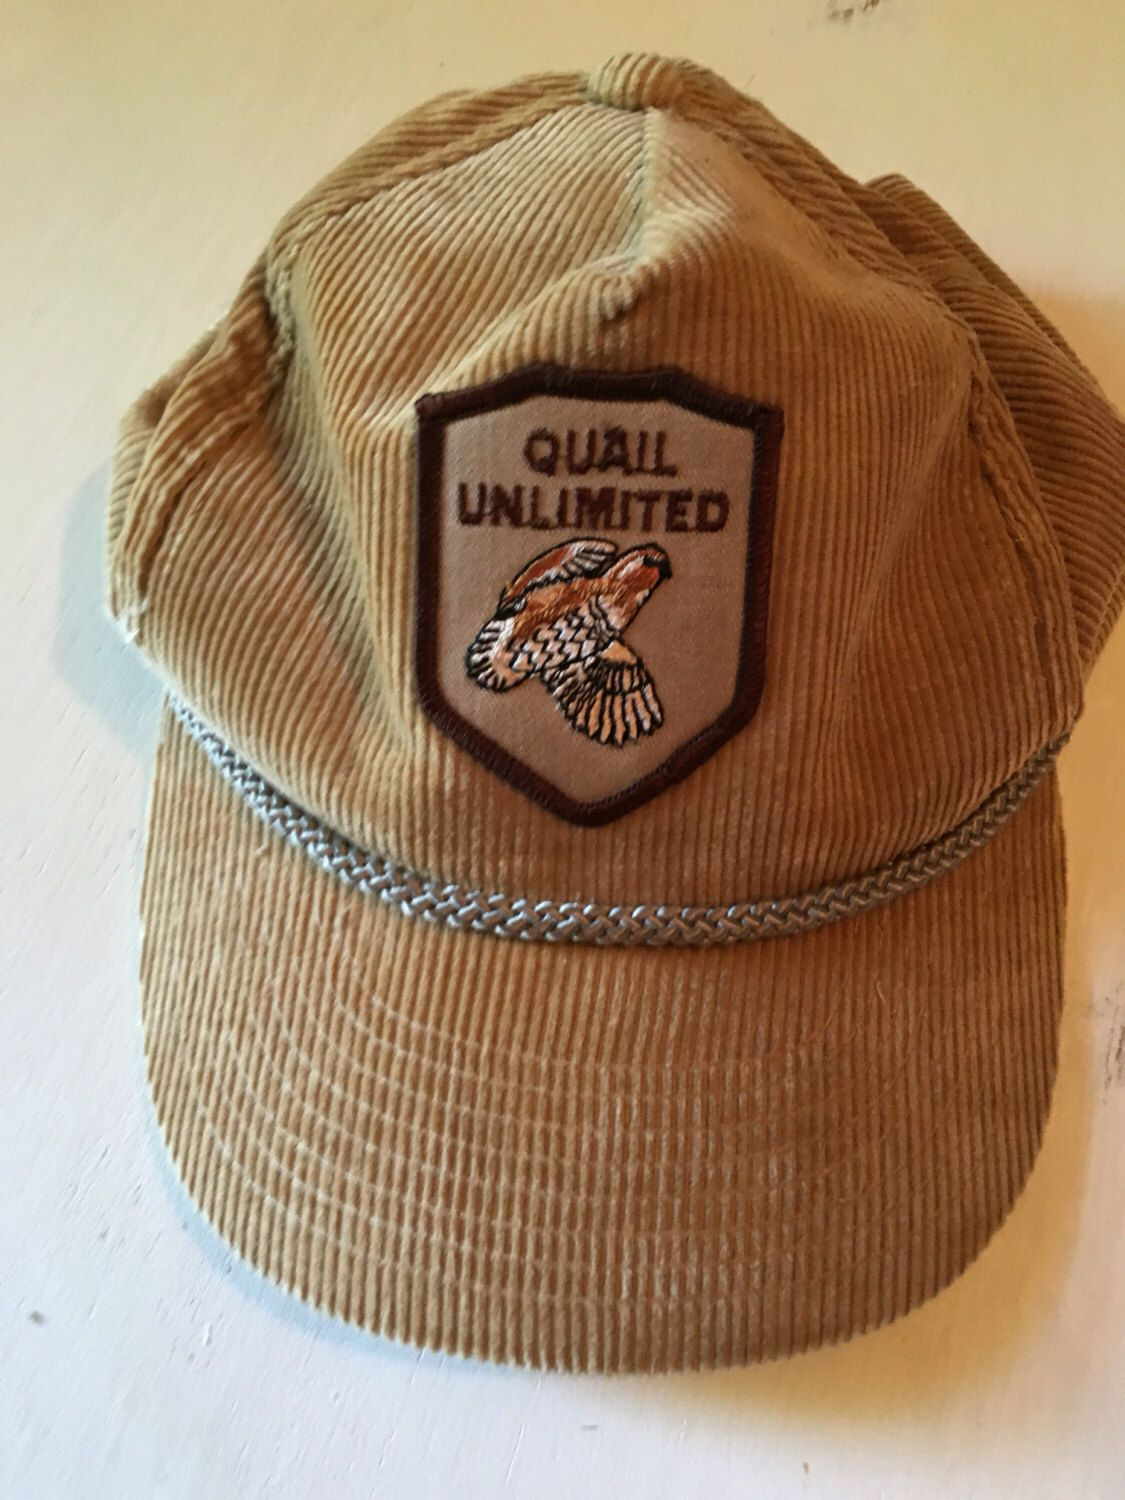 df119f4d590 Vintage Hunting Hat - Small Game Quail Unlimited Adjustable Hat - Mens Cap  - Sporting Gear - Old School Corduroy Hat